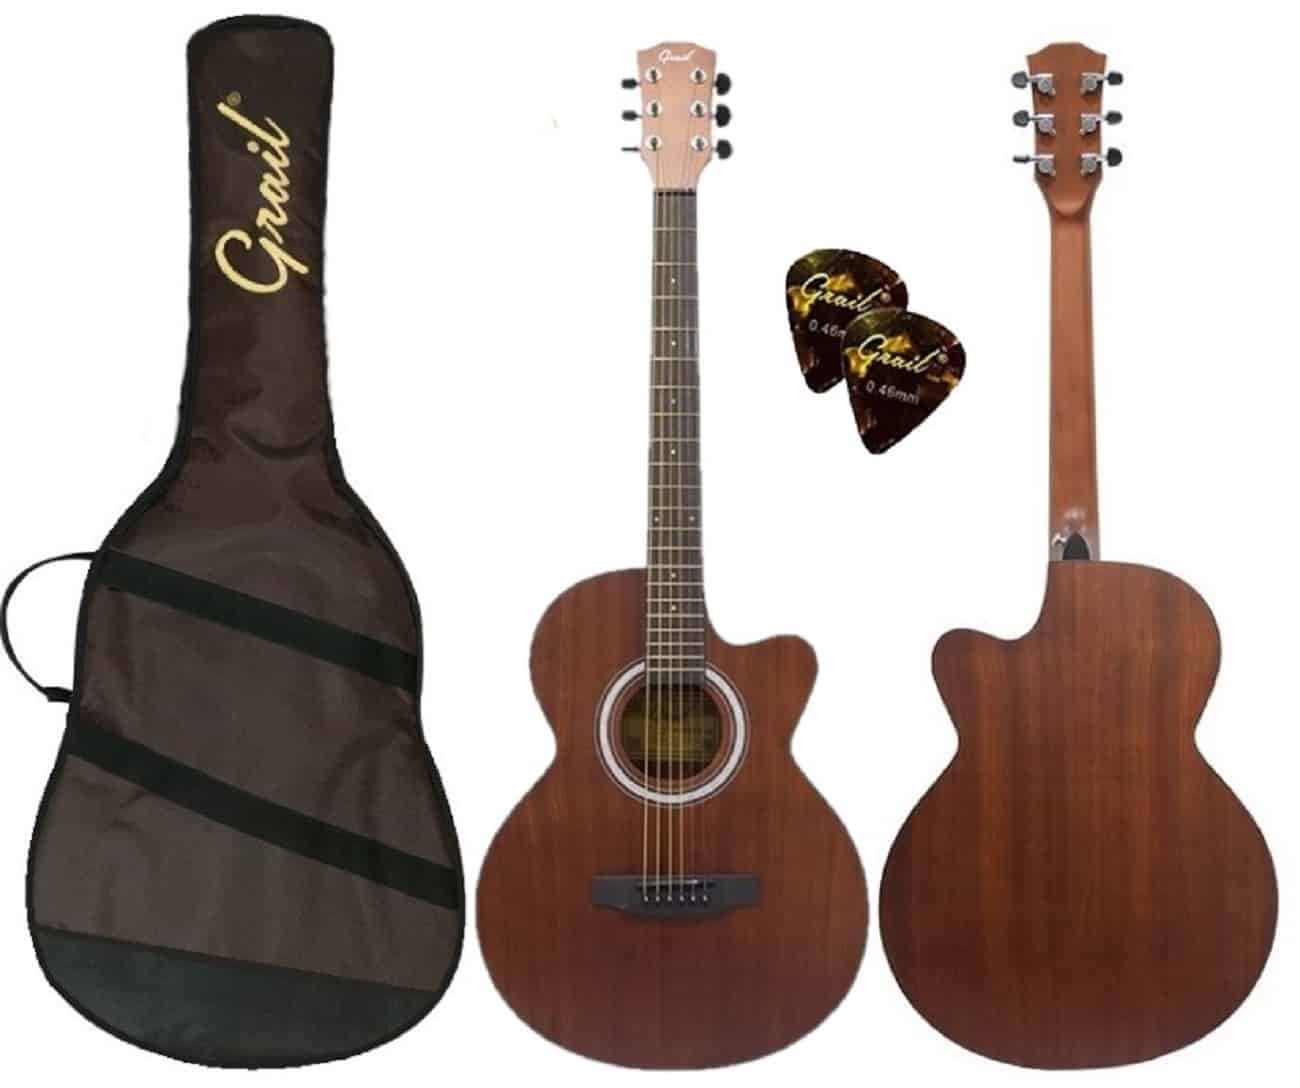 Grail Allure A190C SAS Acoustic Guitar Cutaway All Sapele (FREE Water Resistant Padded Gig Bag & 2 Picks)